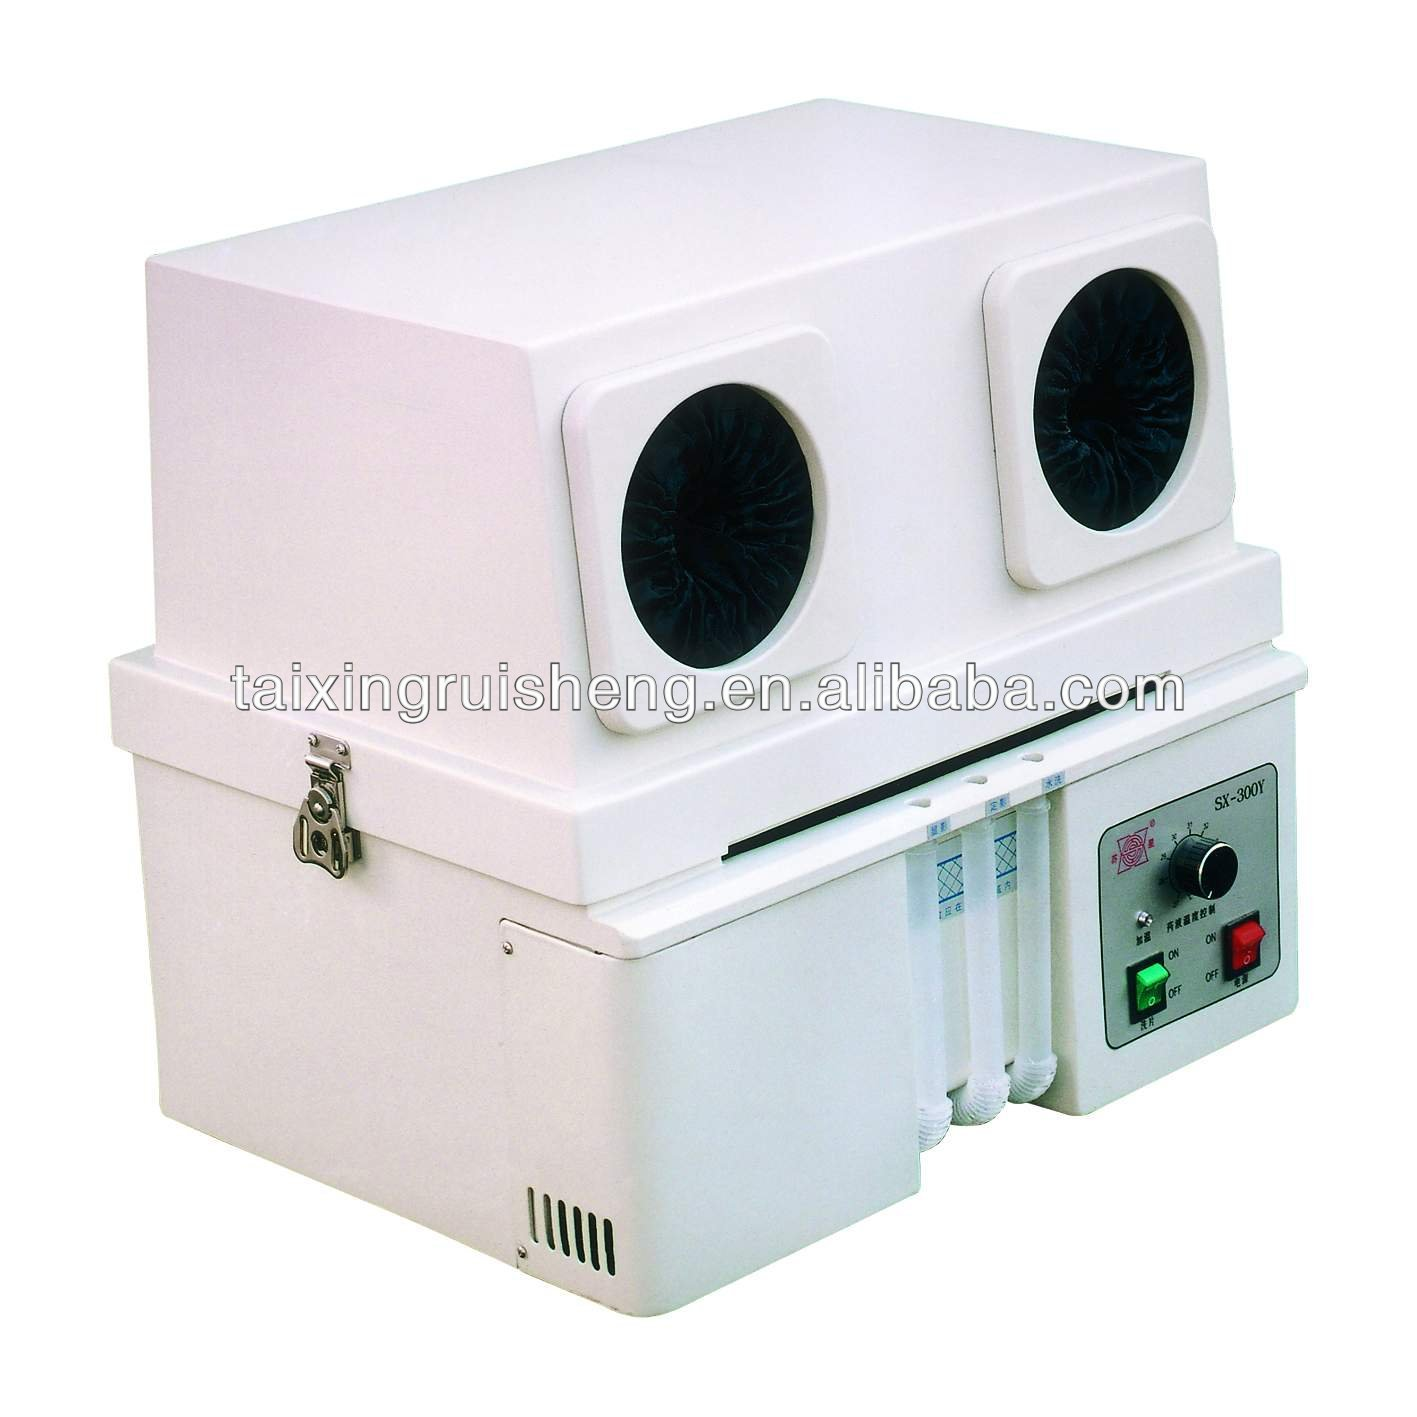 Automatic Dental X-ray Film Processor 300Y